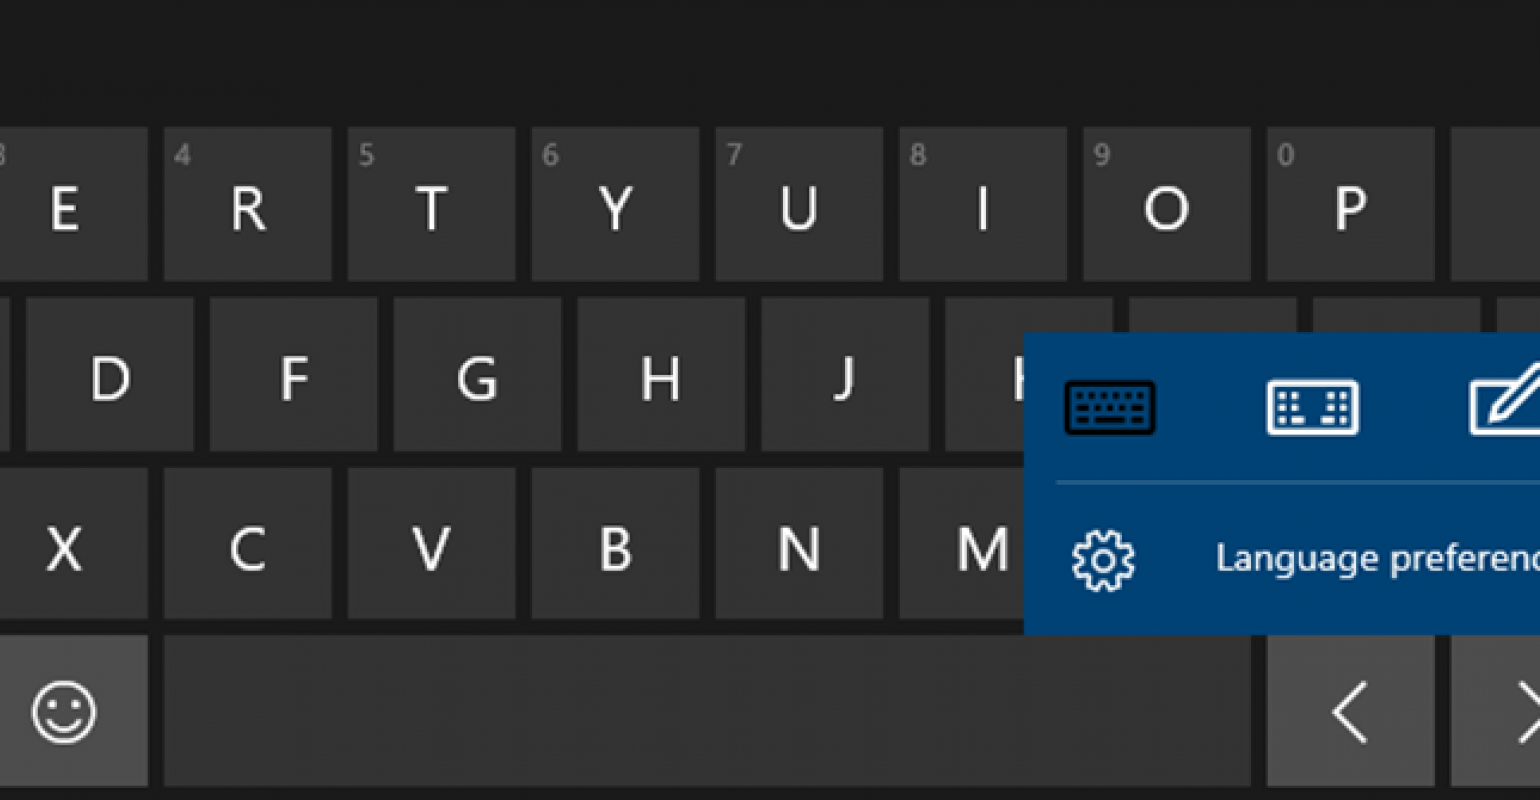 How To: Change Between the Different Onscreen Keyboard